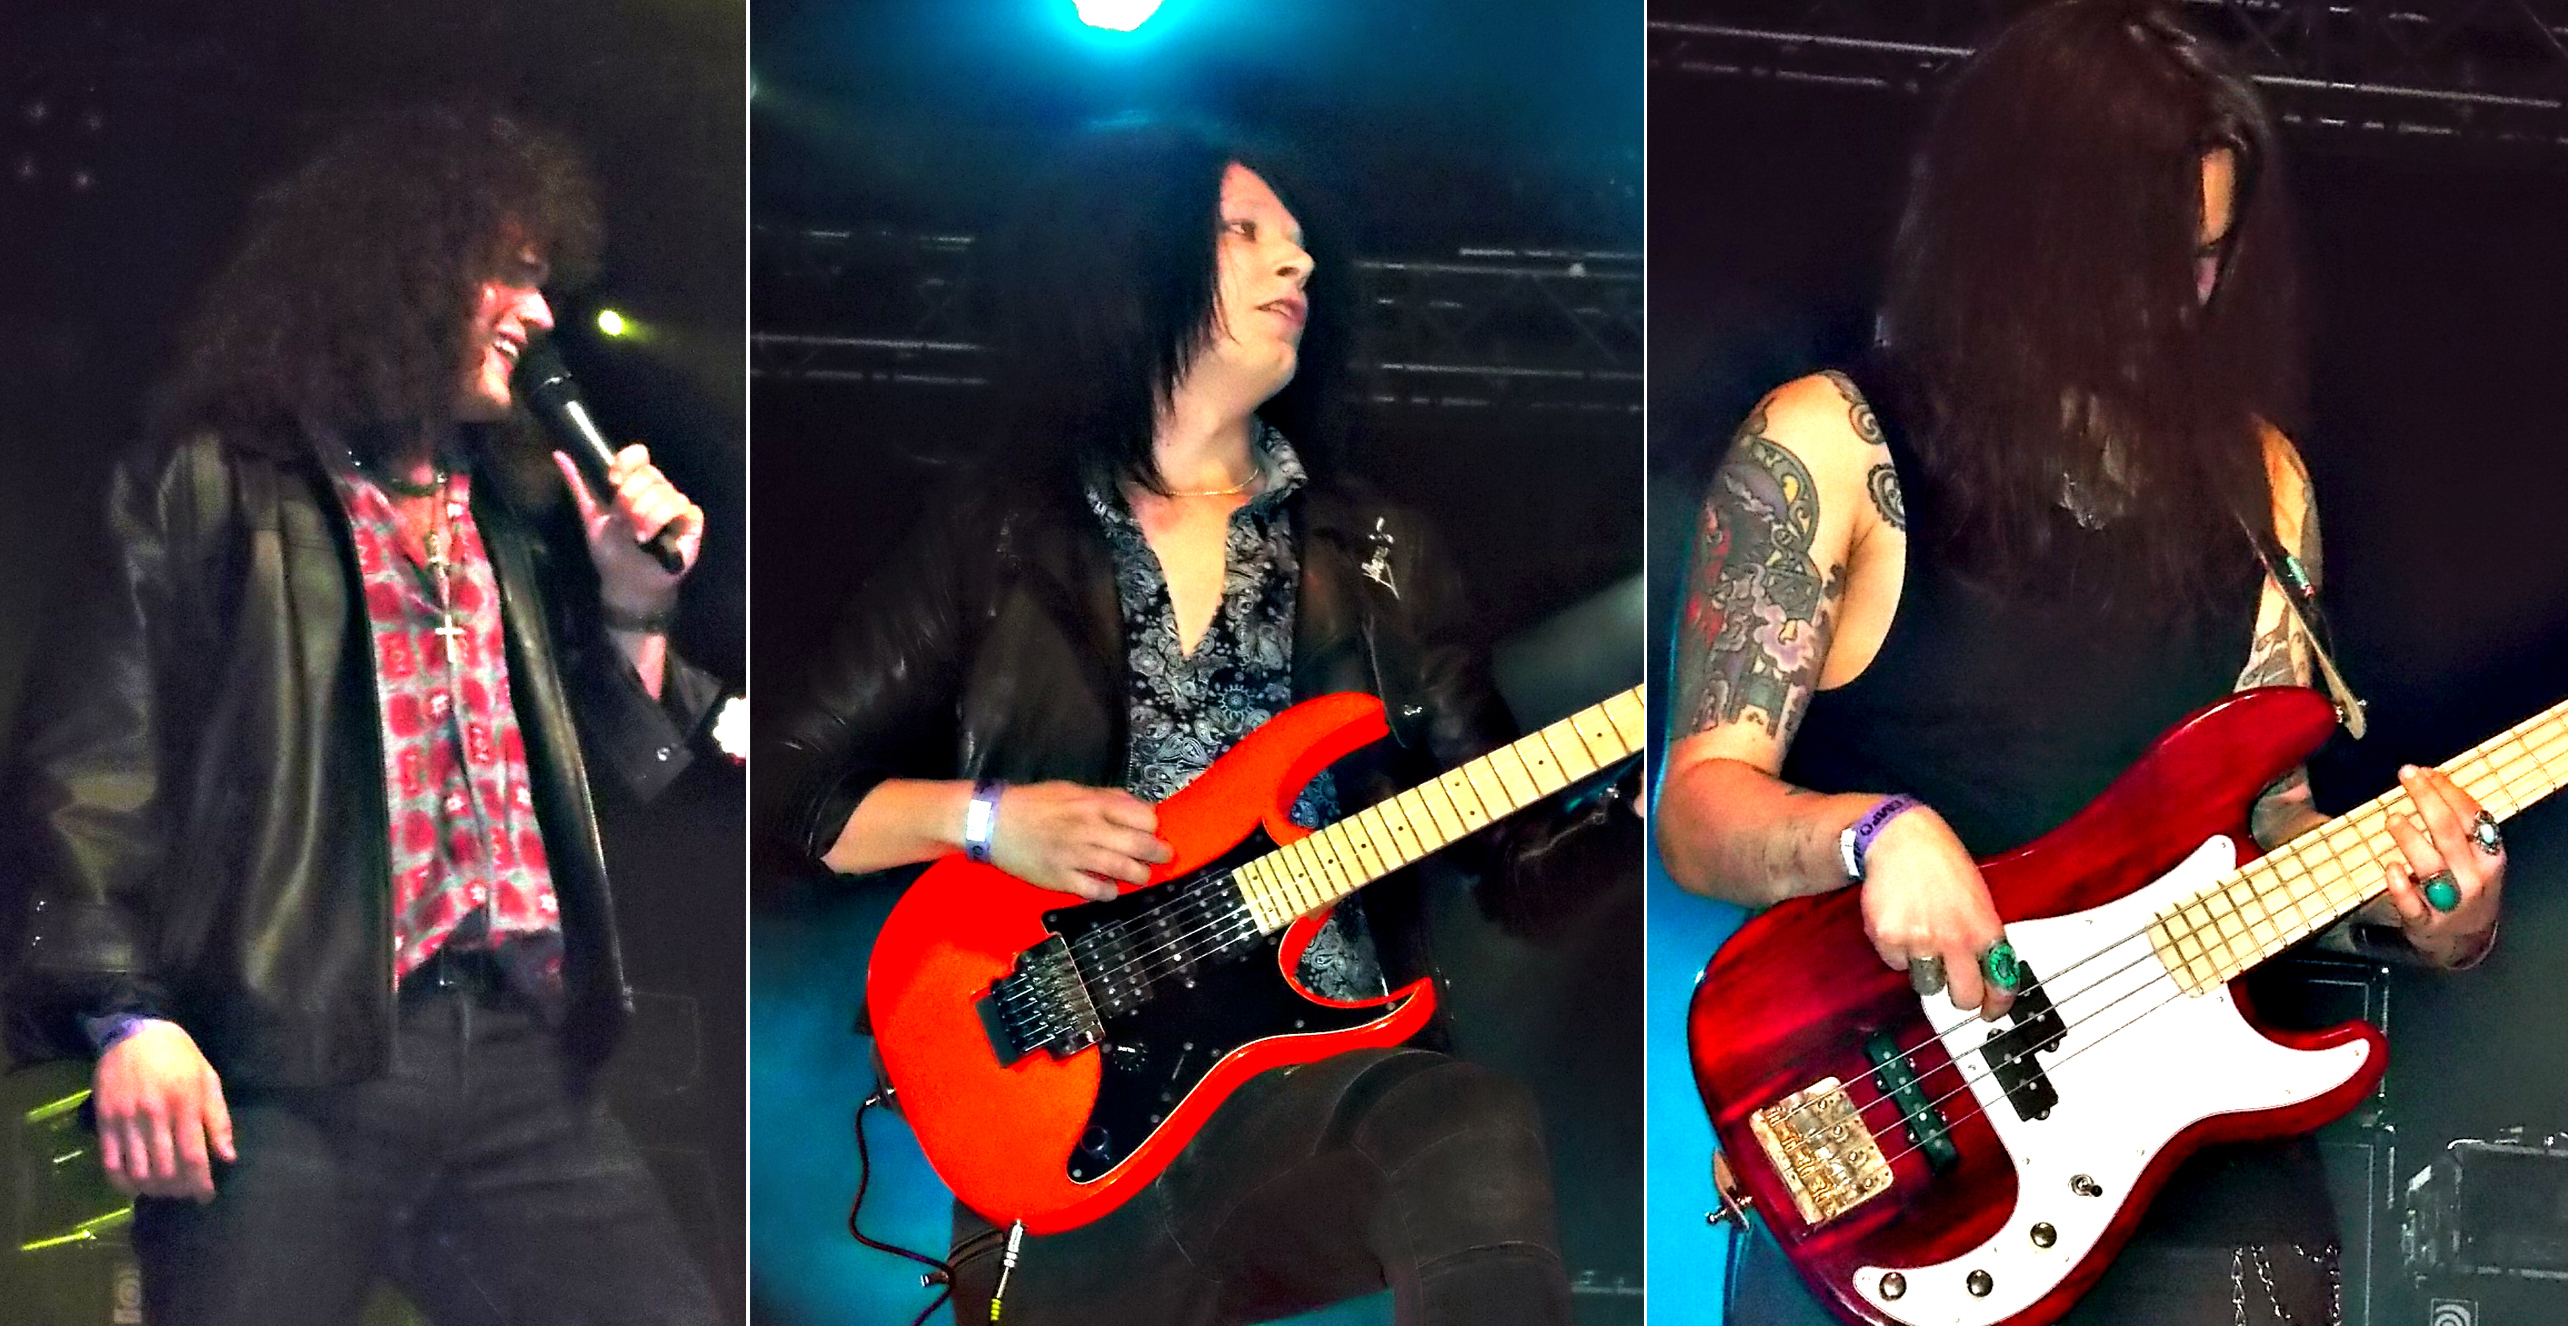 Palace @ FRF4 - Frontiers Rock Festival - 29 04 2017